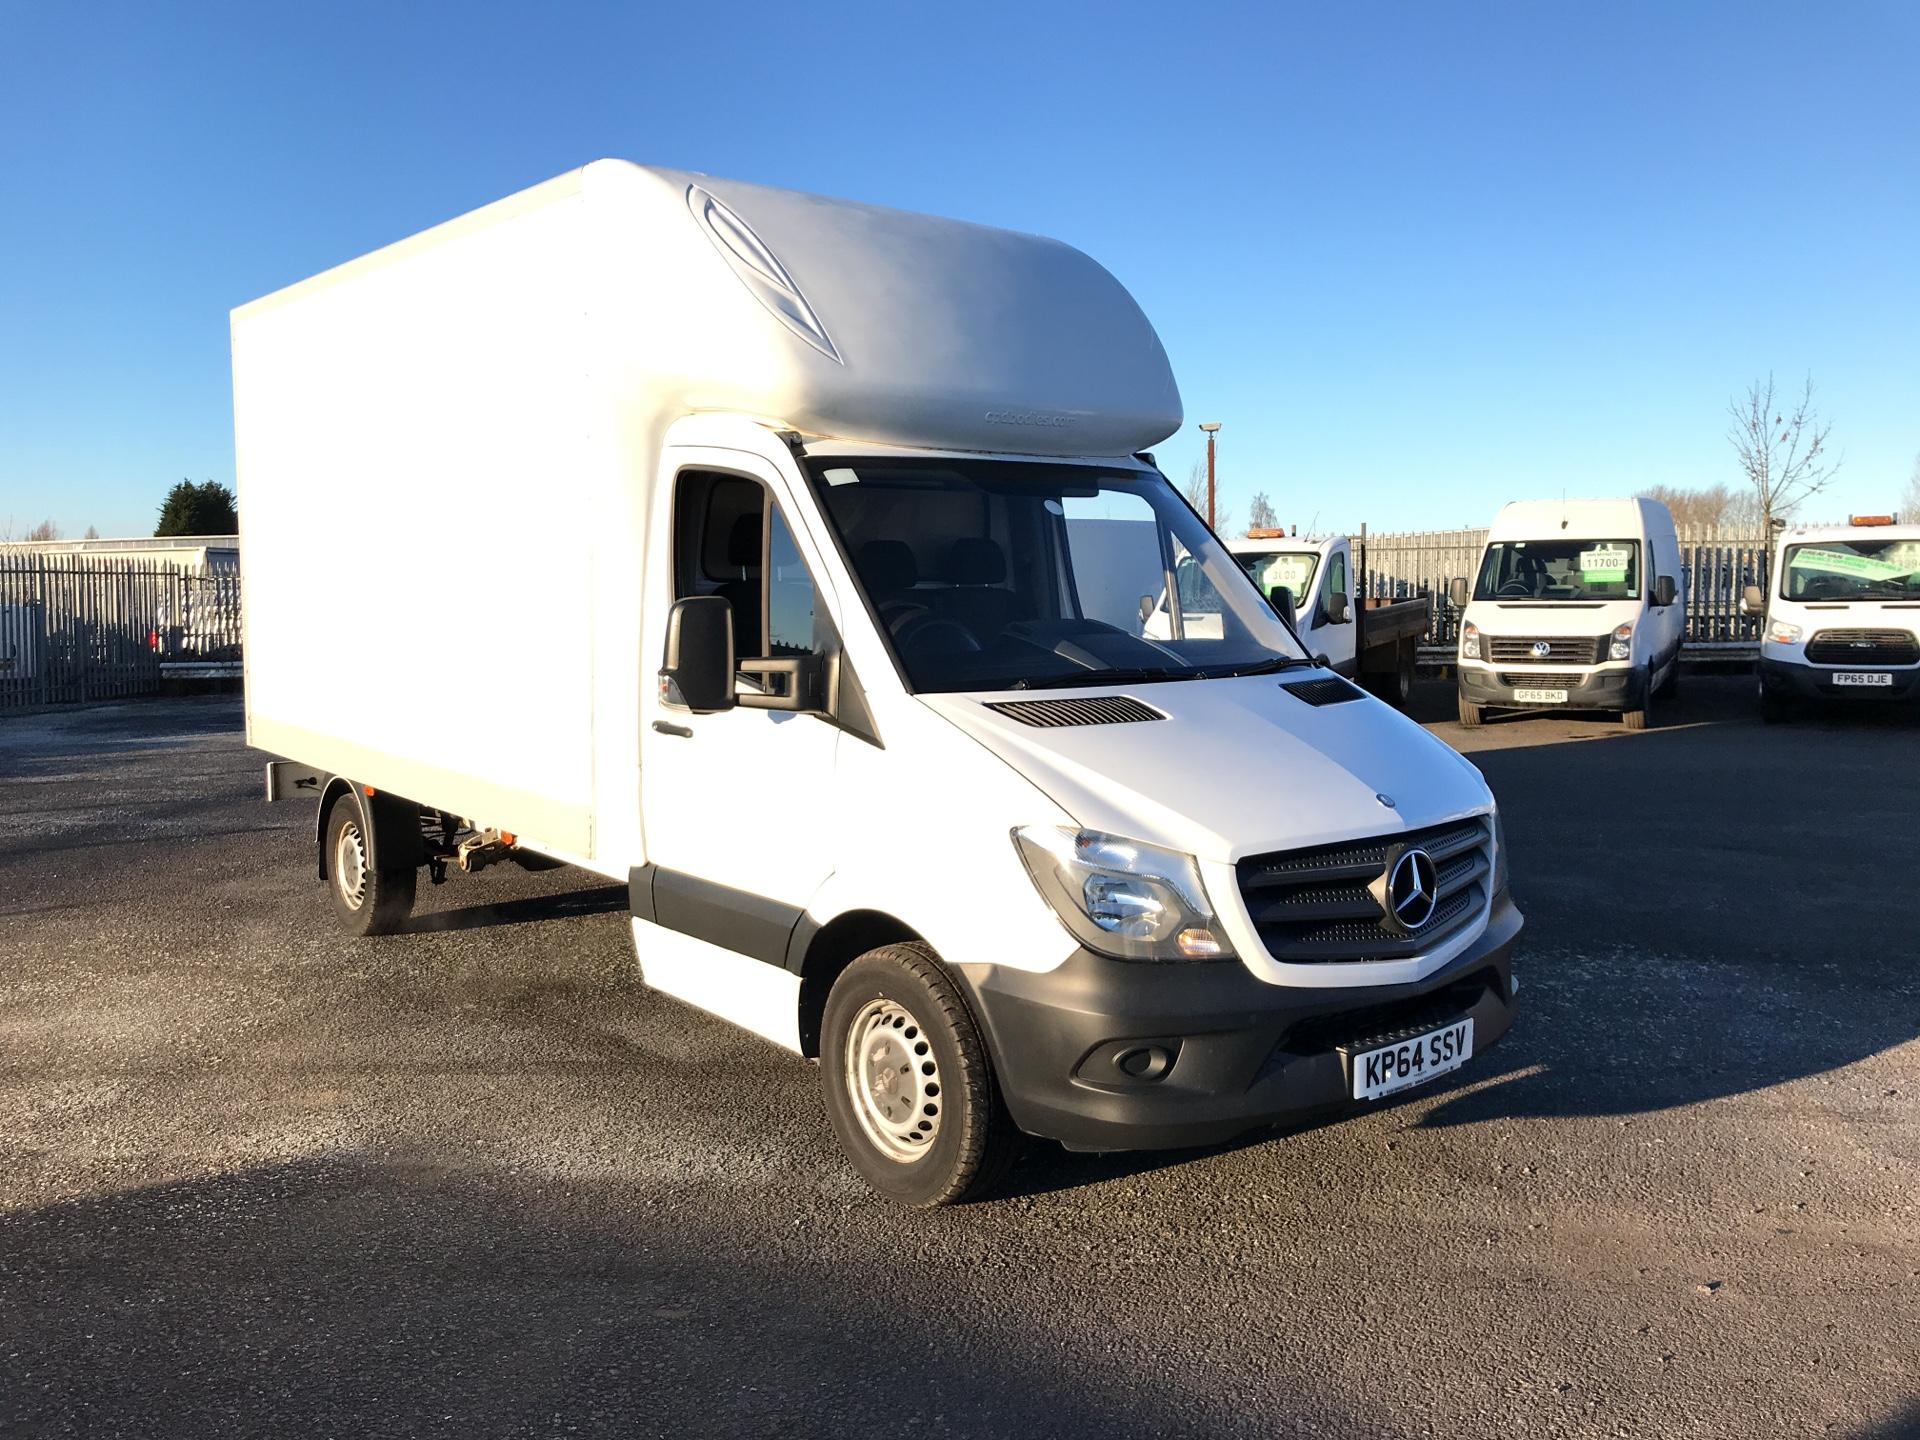 2014 Mercedes-Benz Sprinter 313 CDI LWB DIESEL 3.5T LUTON VAN EURO 5 *VALUE RANGE VEHICLE - CONDITION REFLECTED IN PRICE* (KP64SSV)